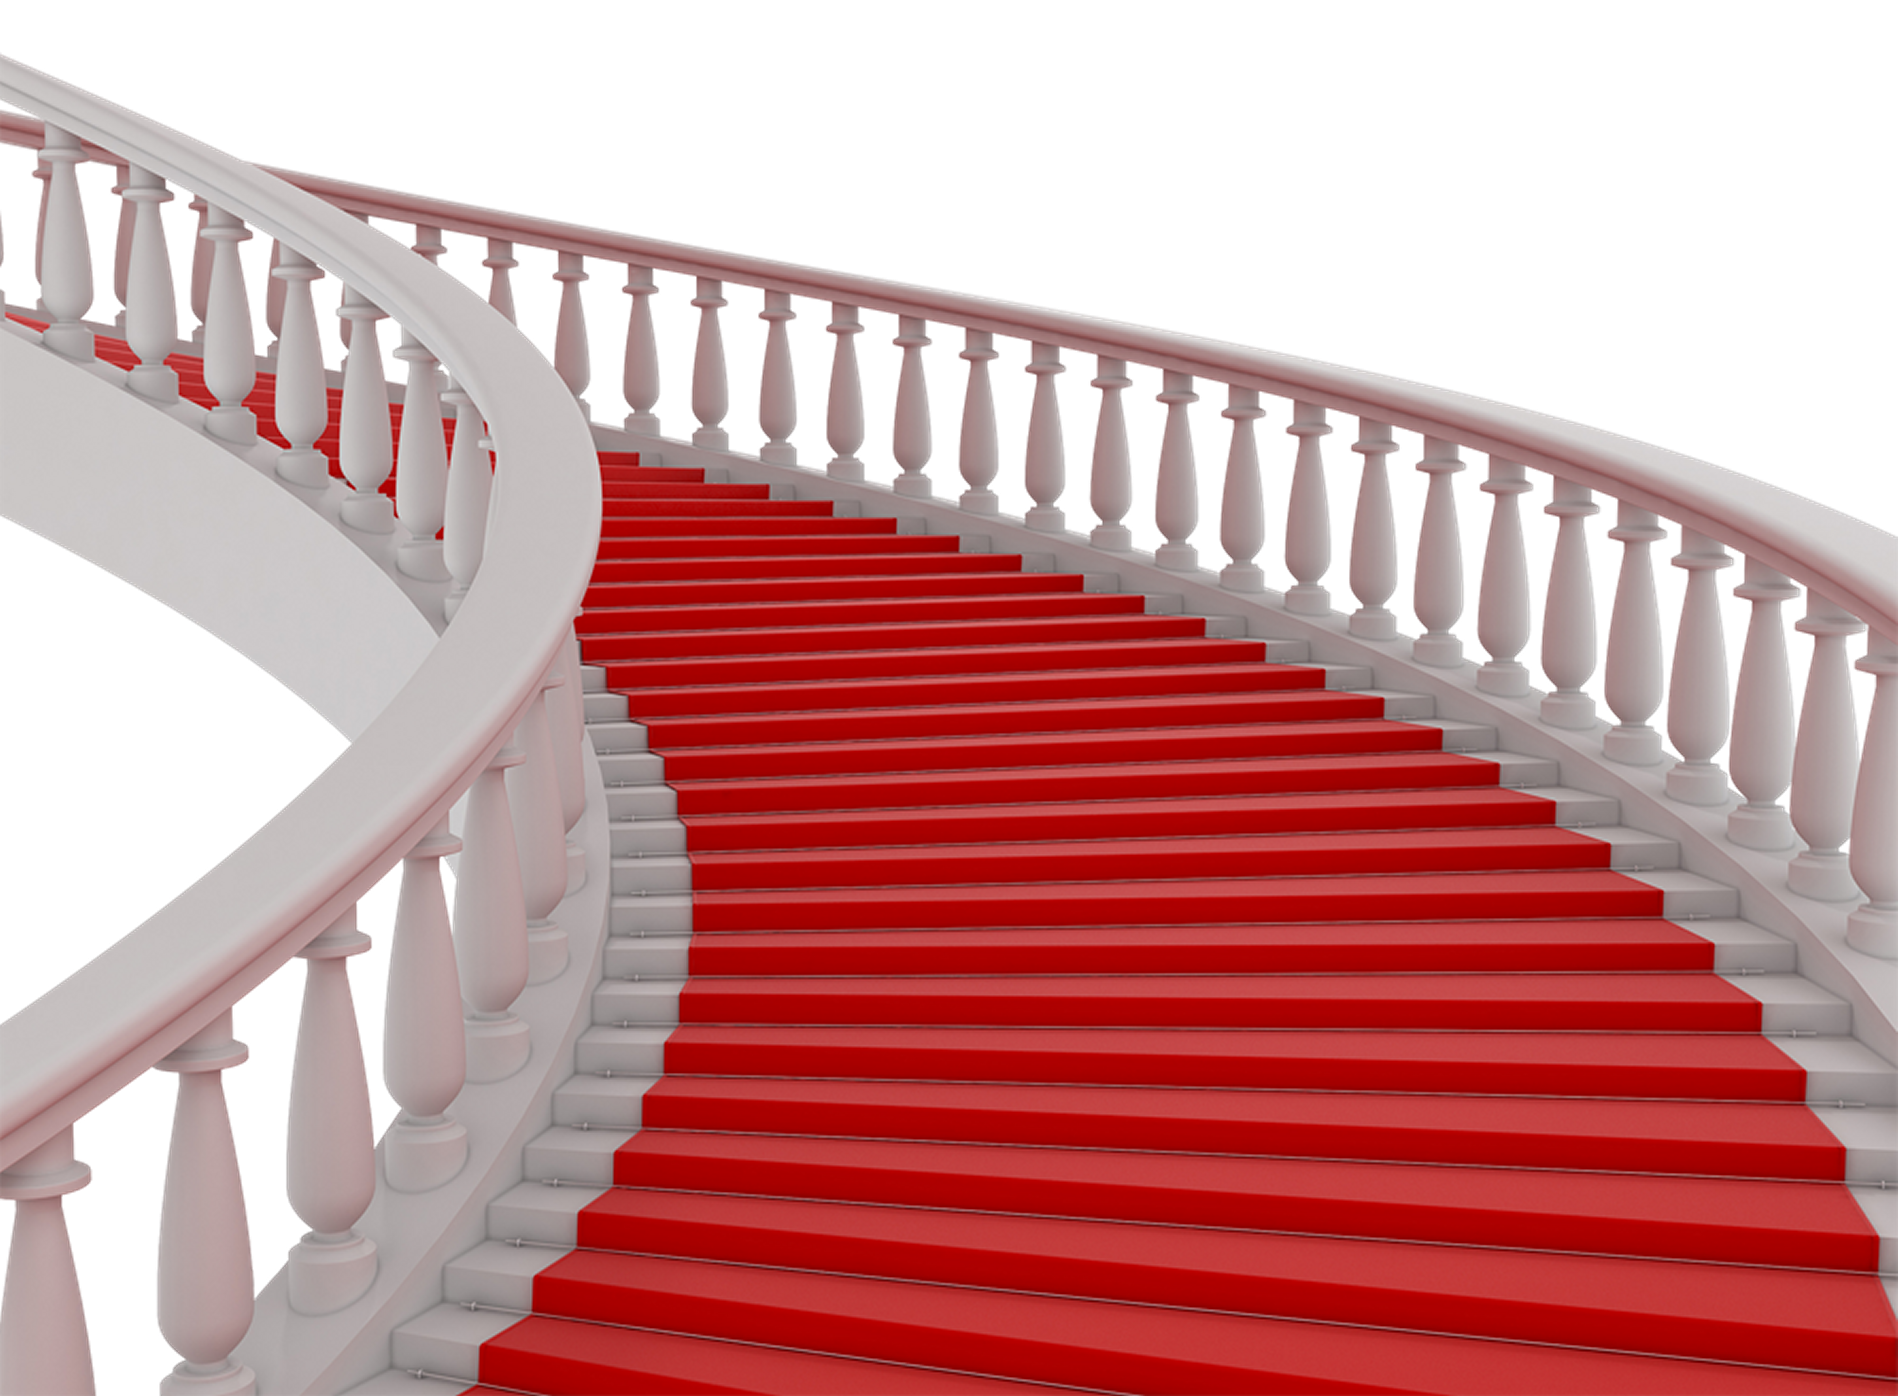 Staircase clipart house stair. Red carpet stairs png